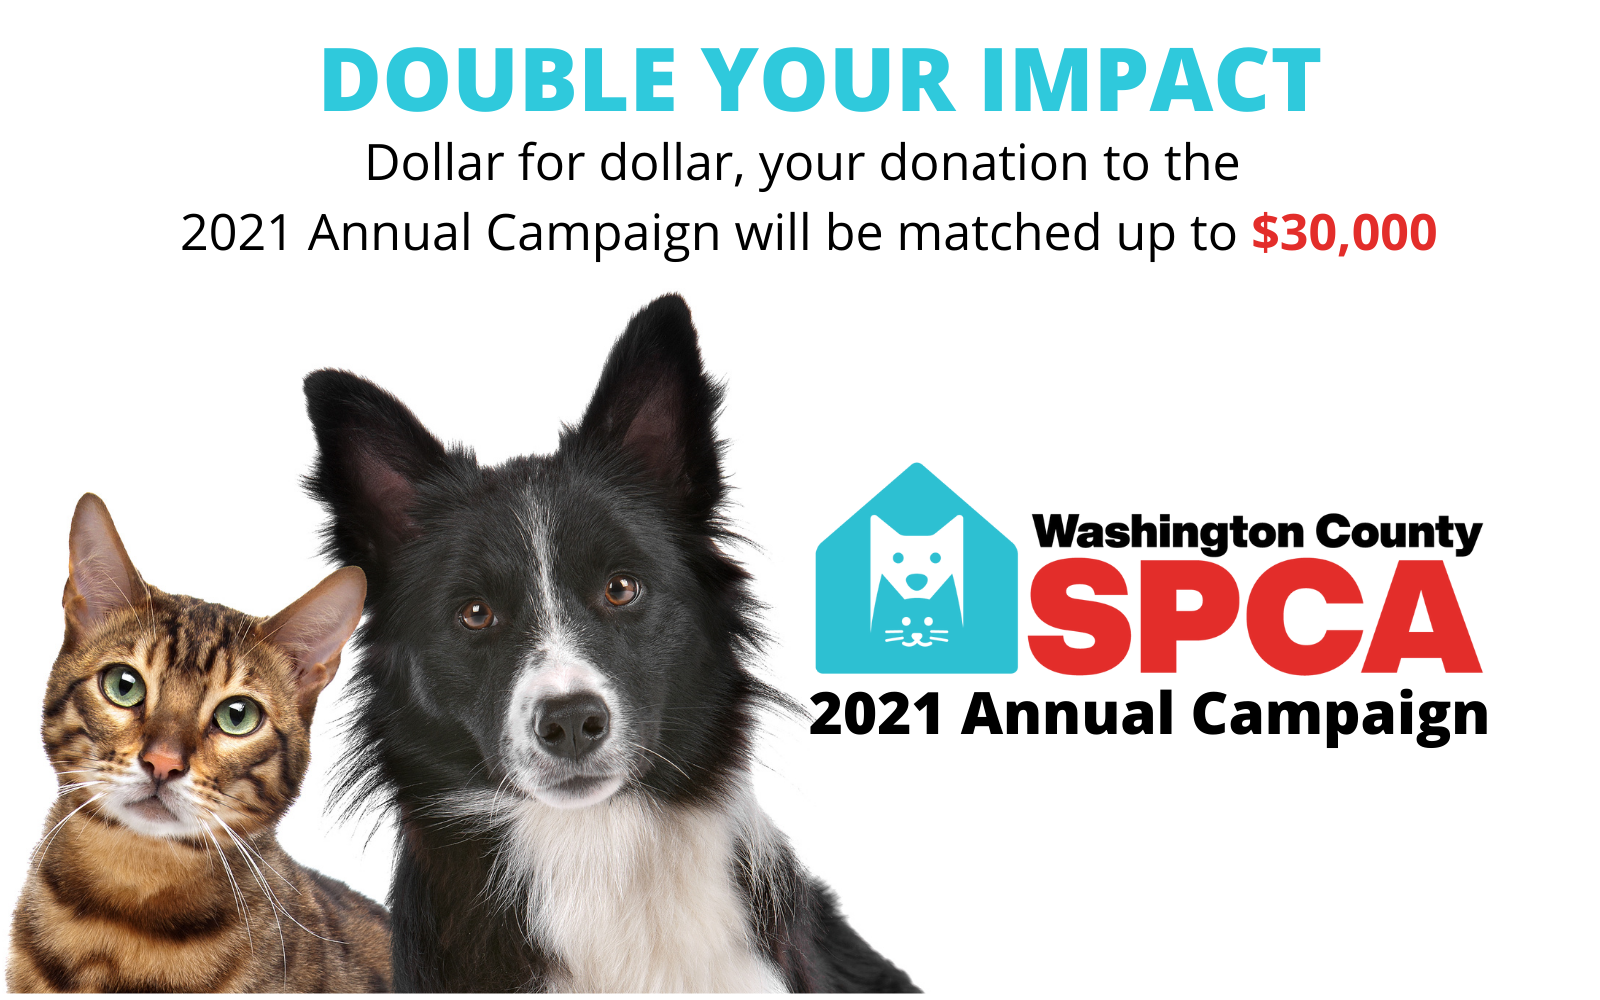 Double your impact! Dollar for dollar, your donation will be matched up to $30,000 total. image